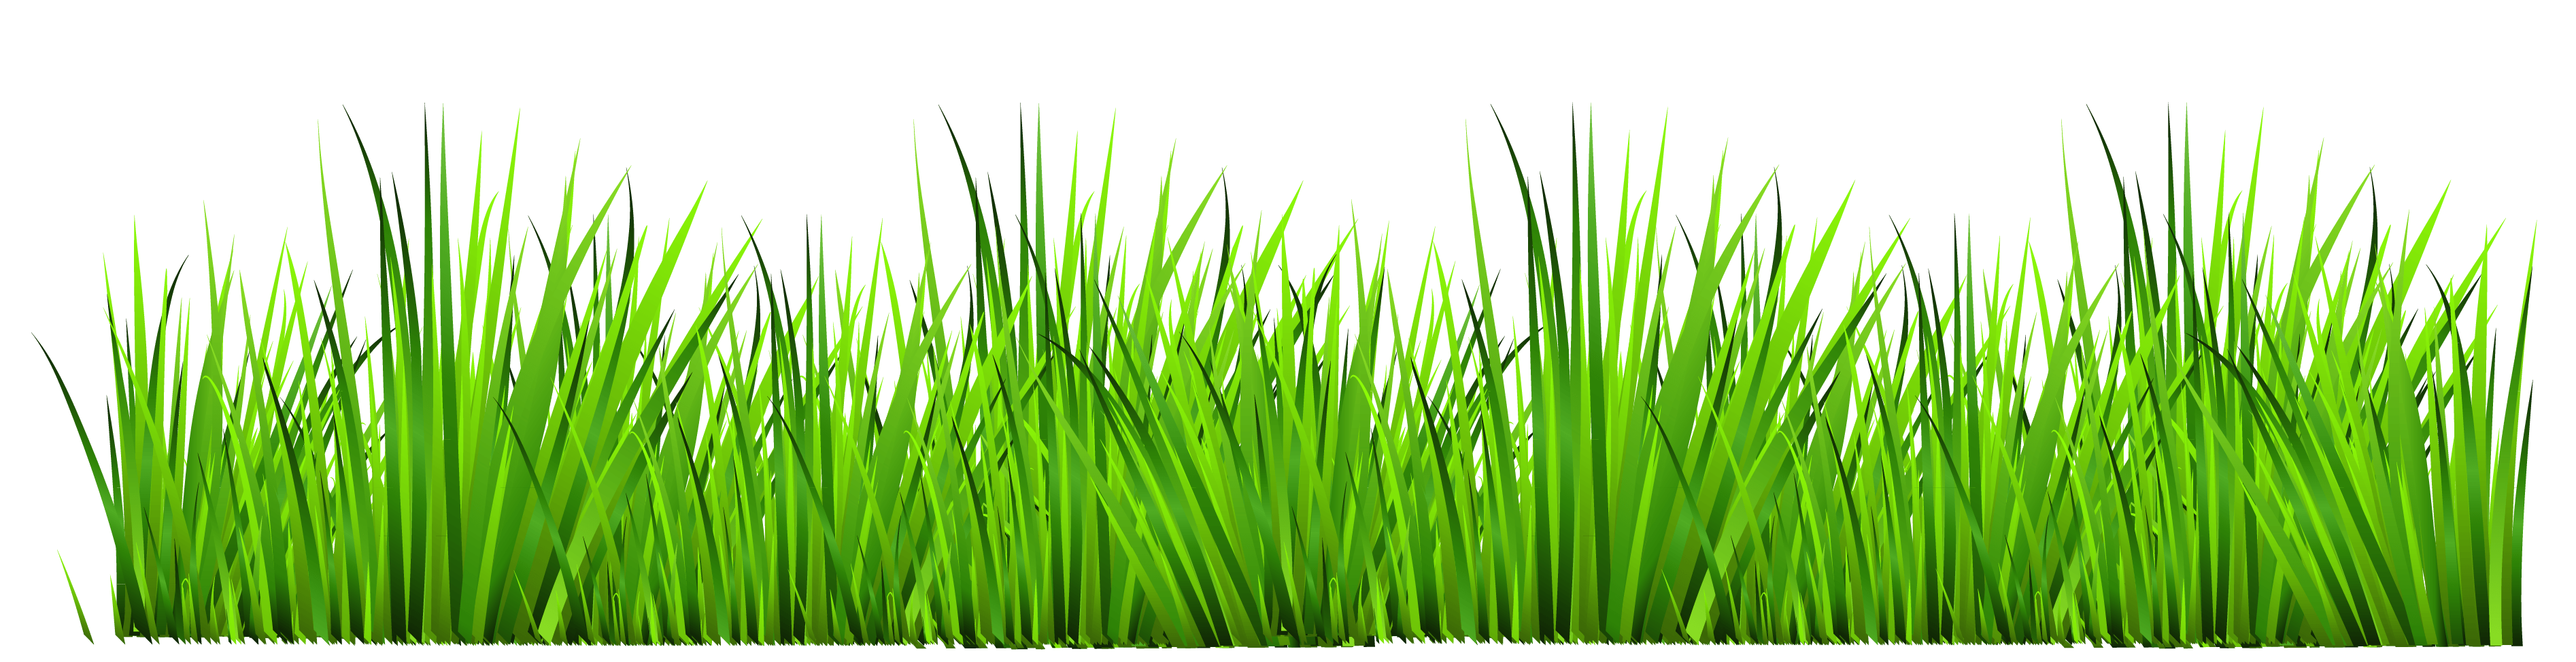 clip royalty free stock Blue iris clip art. Lawn care clipart long grass